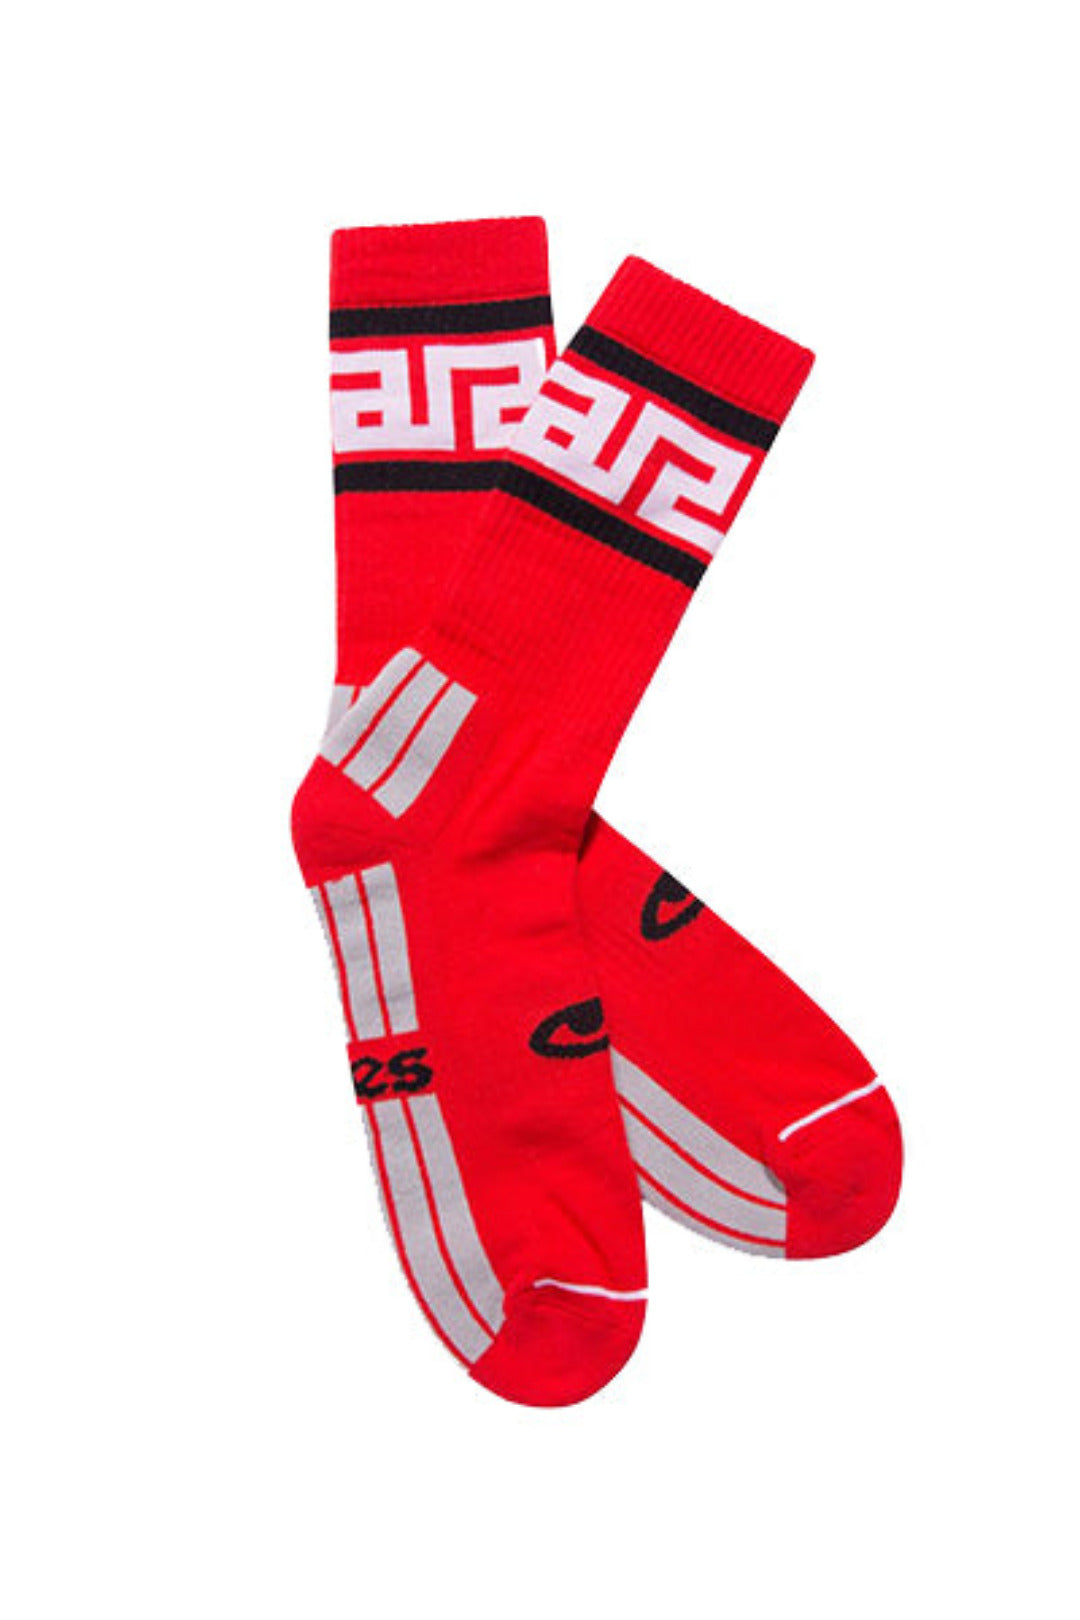 Meandros Socks Red, Socks, Aries, SUPERCONSCIOUS BERLIN- SUPERCONSCIOUS BERLIN